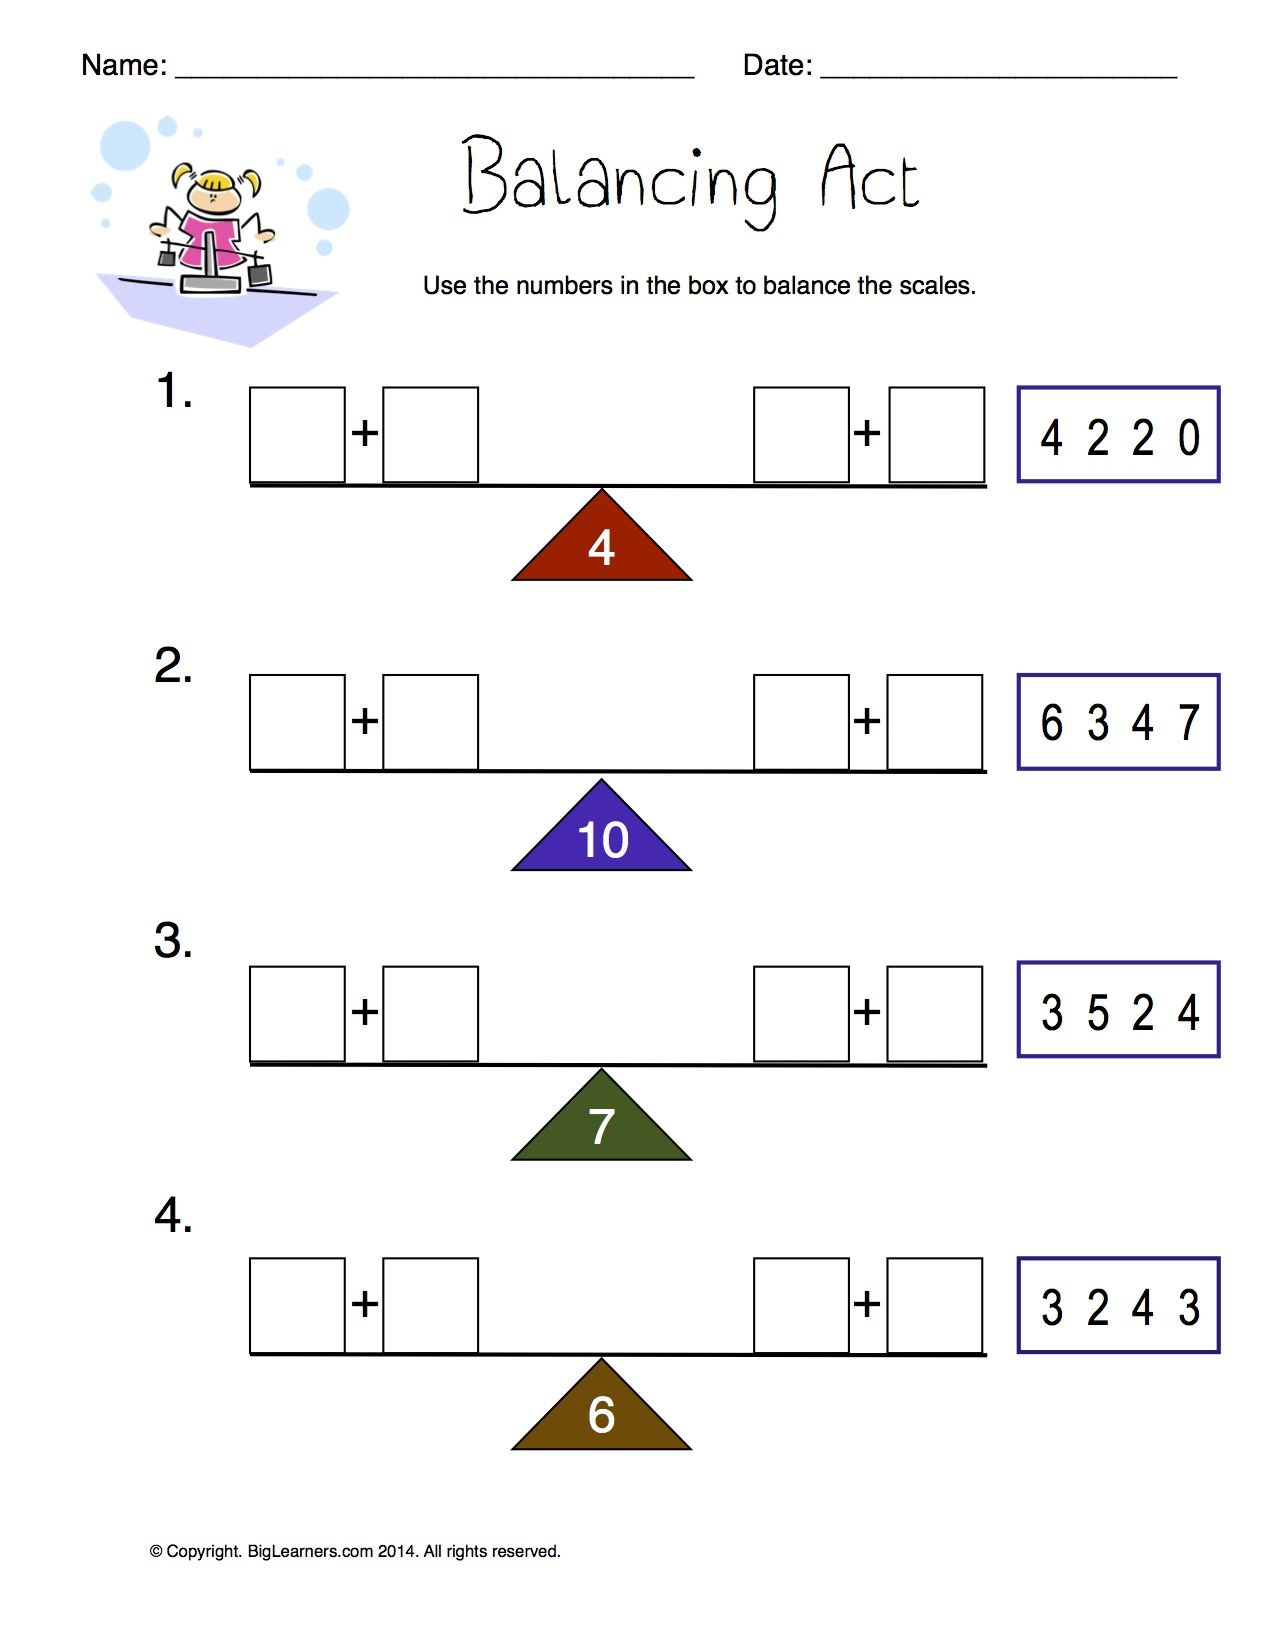 Worksheet Balancing Act Balance The Scales By Writing The Correct Numbers In The Boxes First Grade Math Worksheets Math